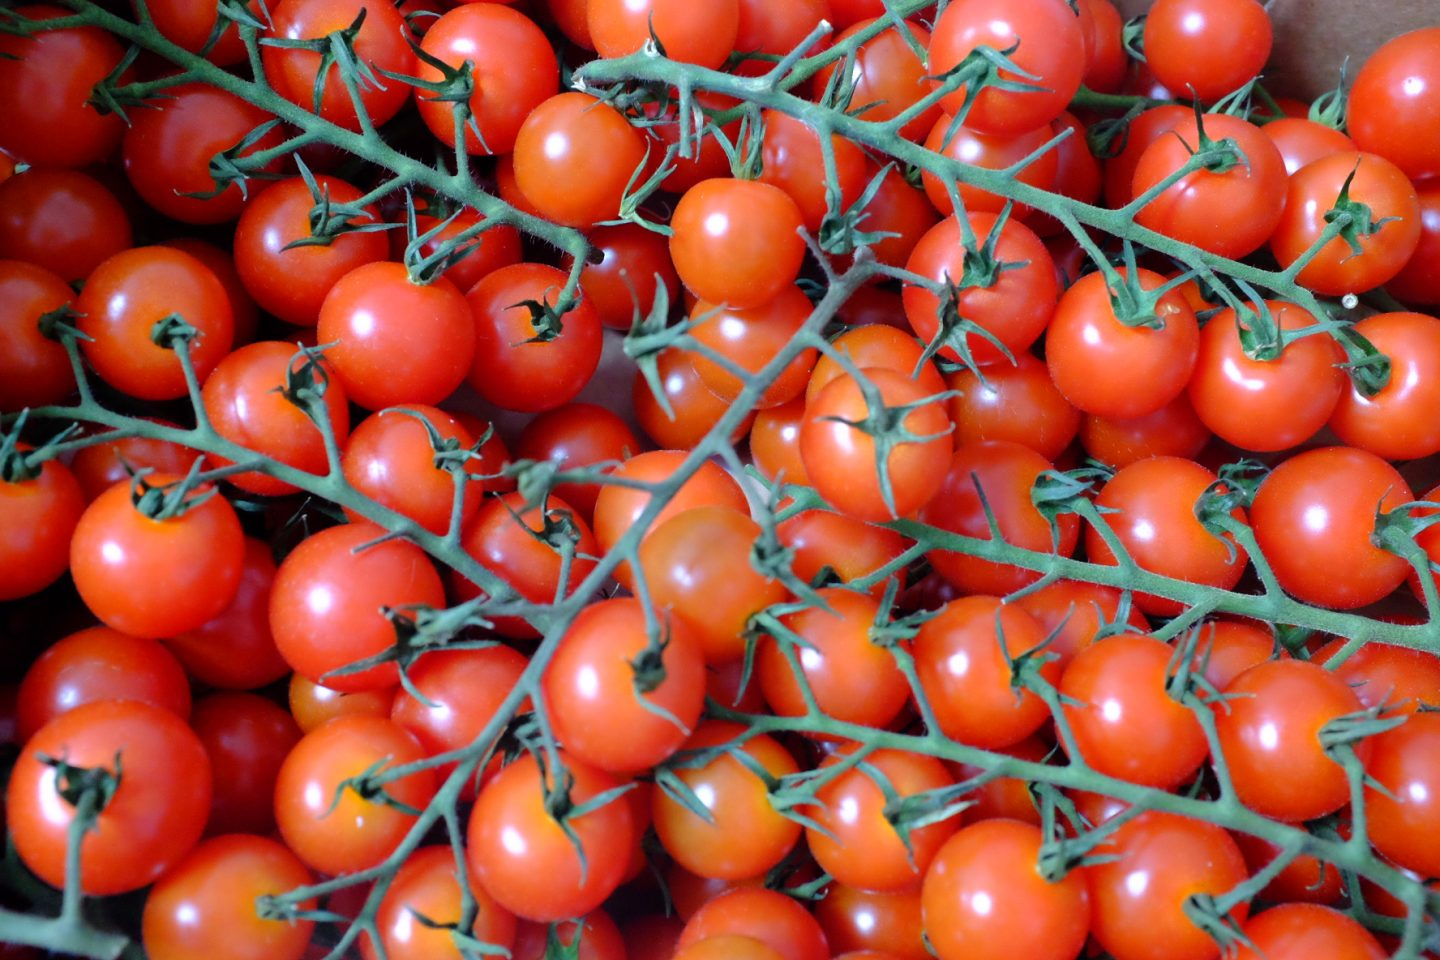 tomatoes - look after my health